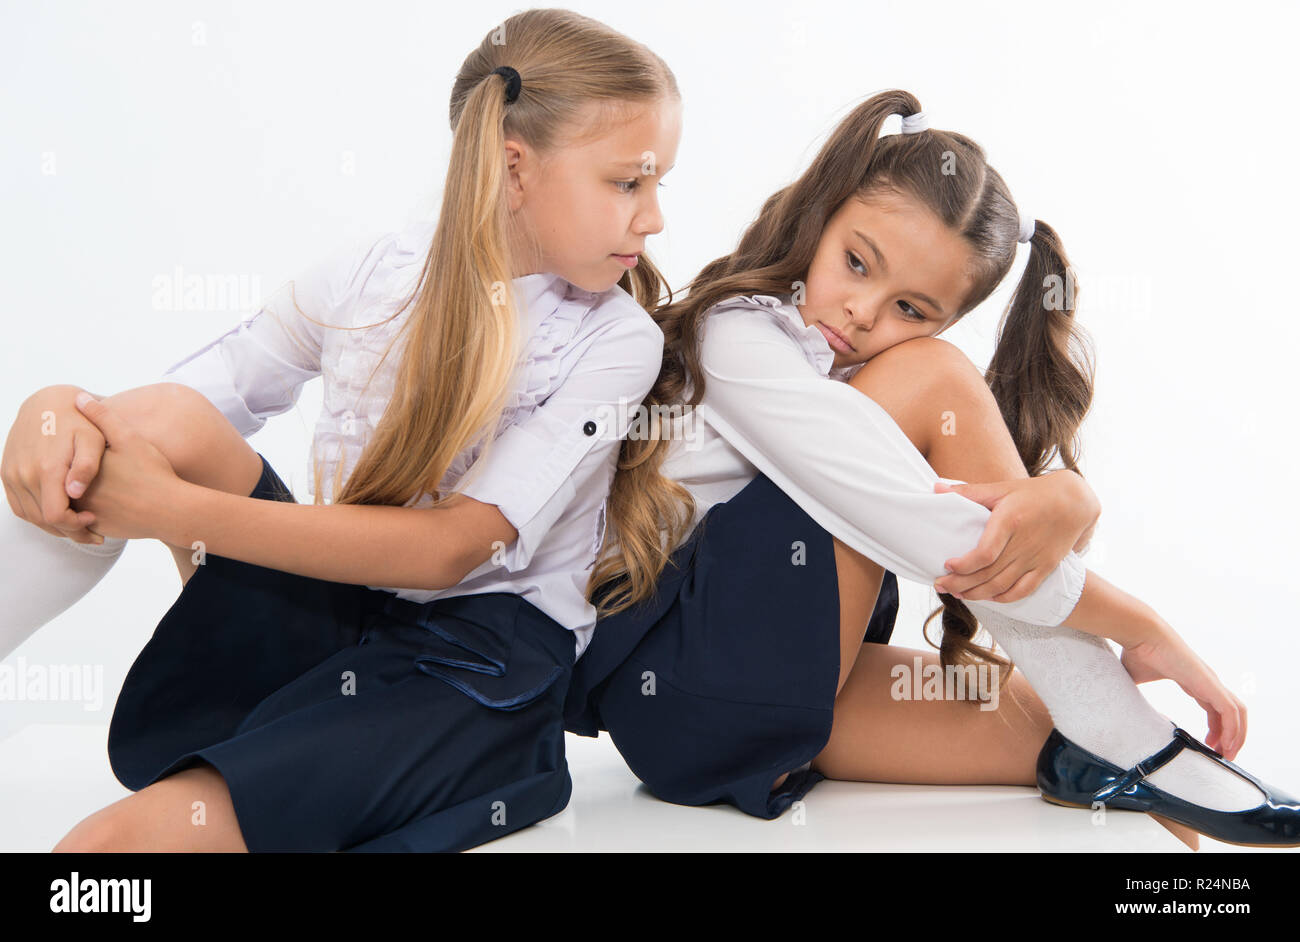 Supportive friend. Girl upset result knowledge test. Schoolgirls cute hairstyle sit desk. Best friends free relaxing after difficult test. Schoolgirls tidy fancy hair supportive conversation. - Stock Image